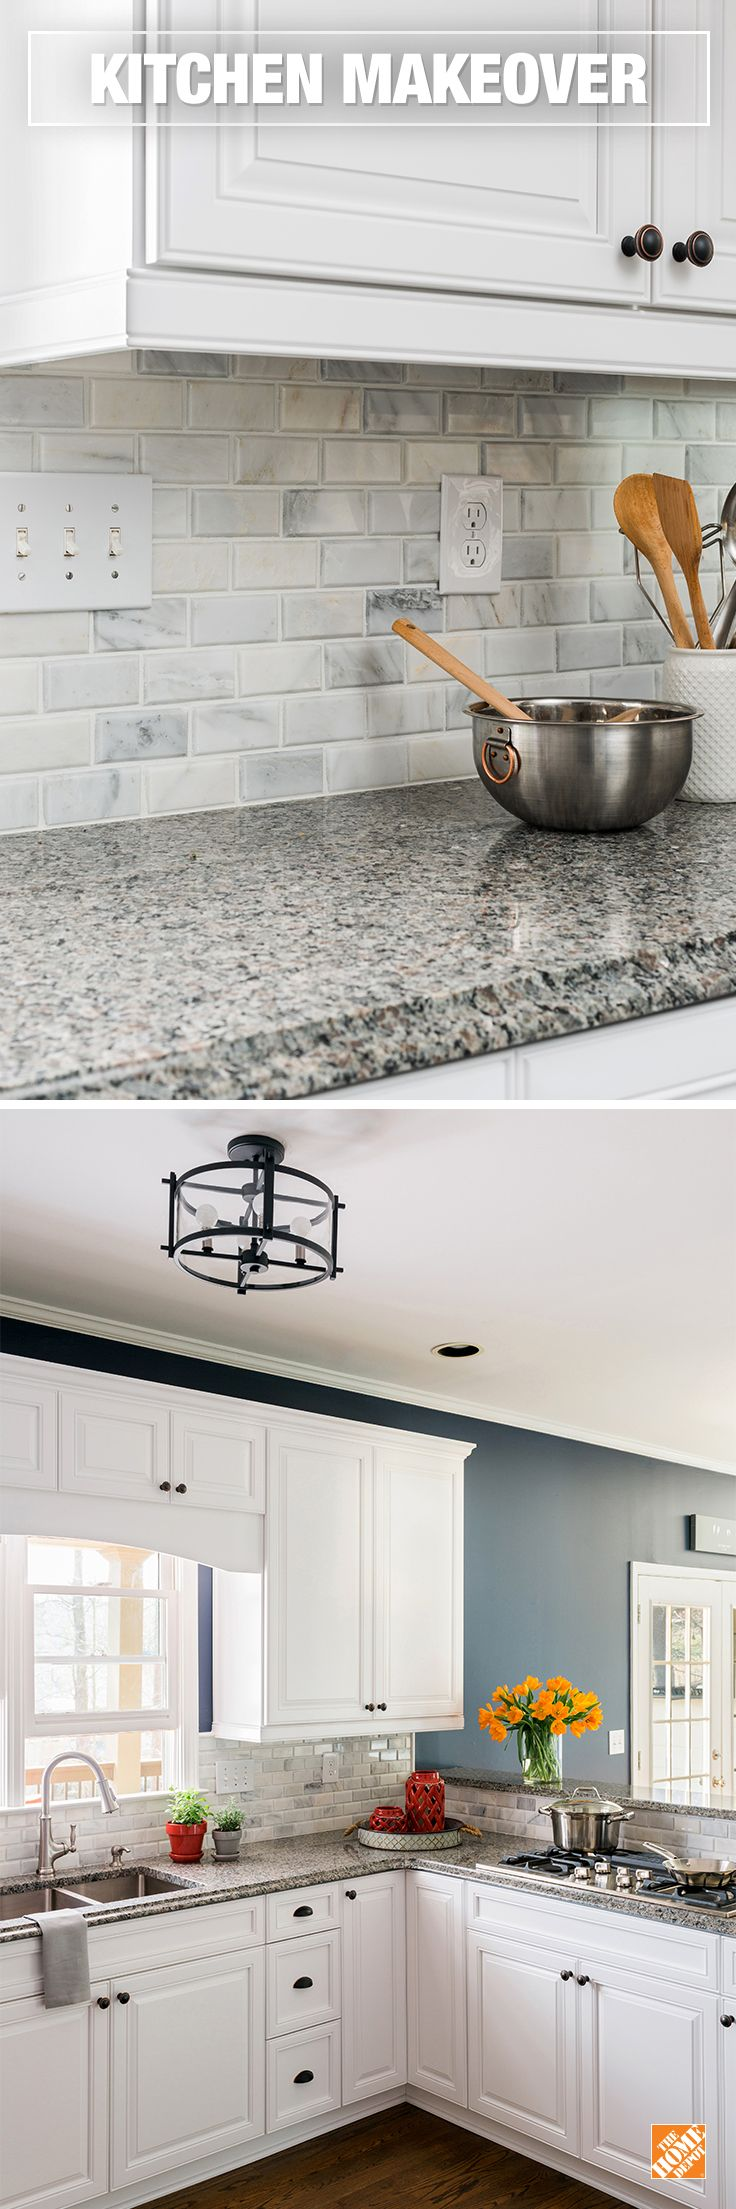 My Kitchen Refacing: You Won\'t Believe The Difference! | Countertops ...